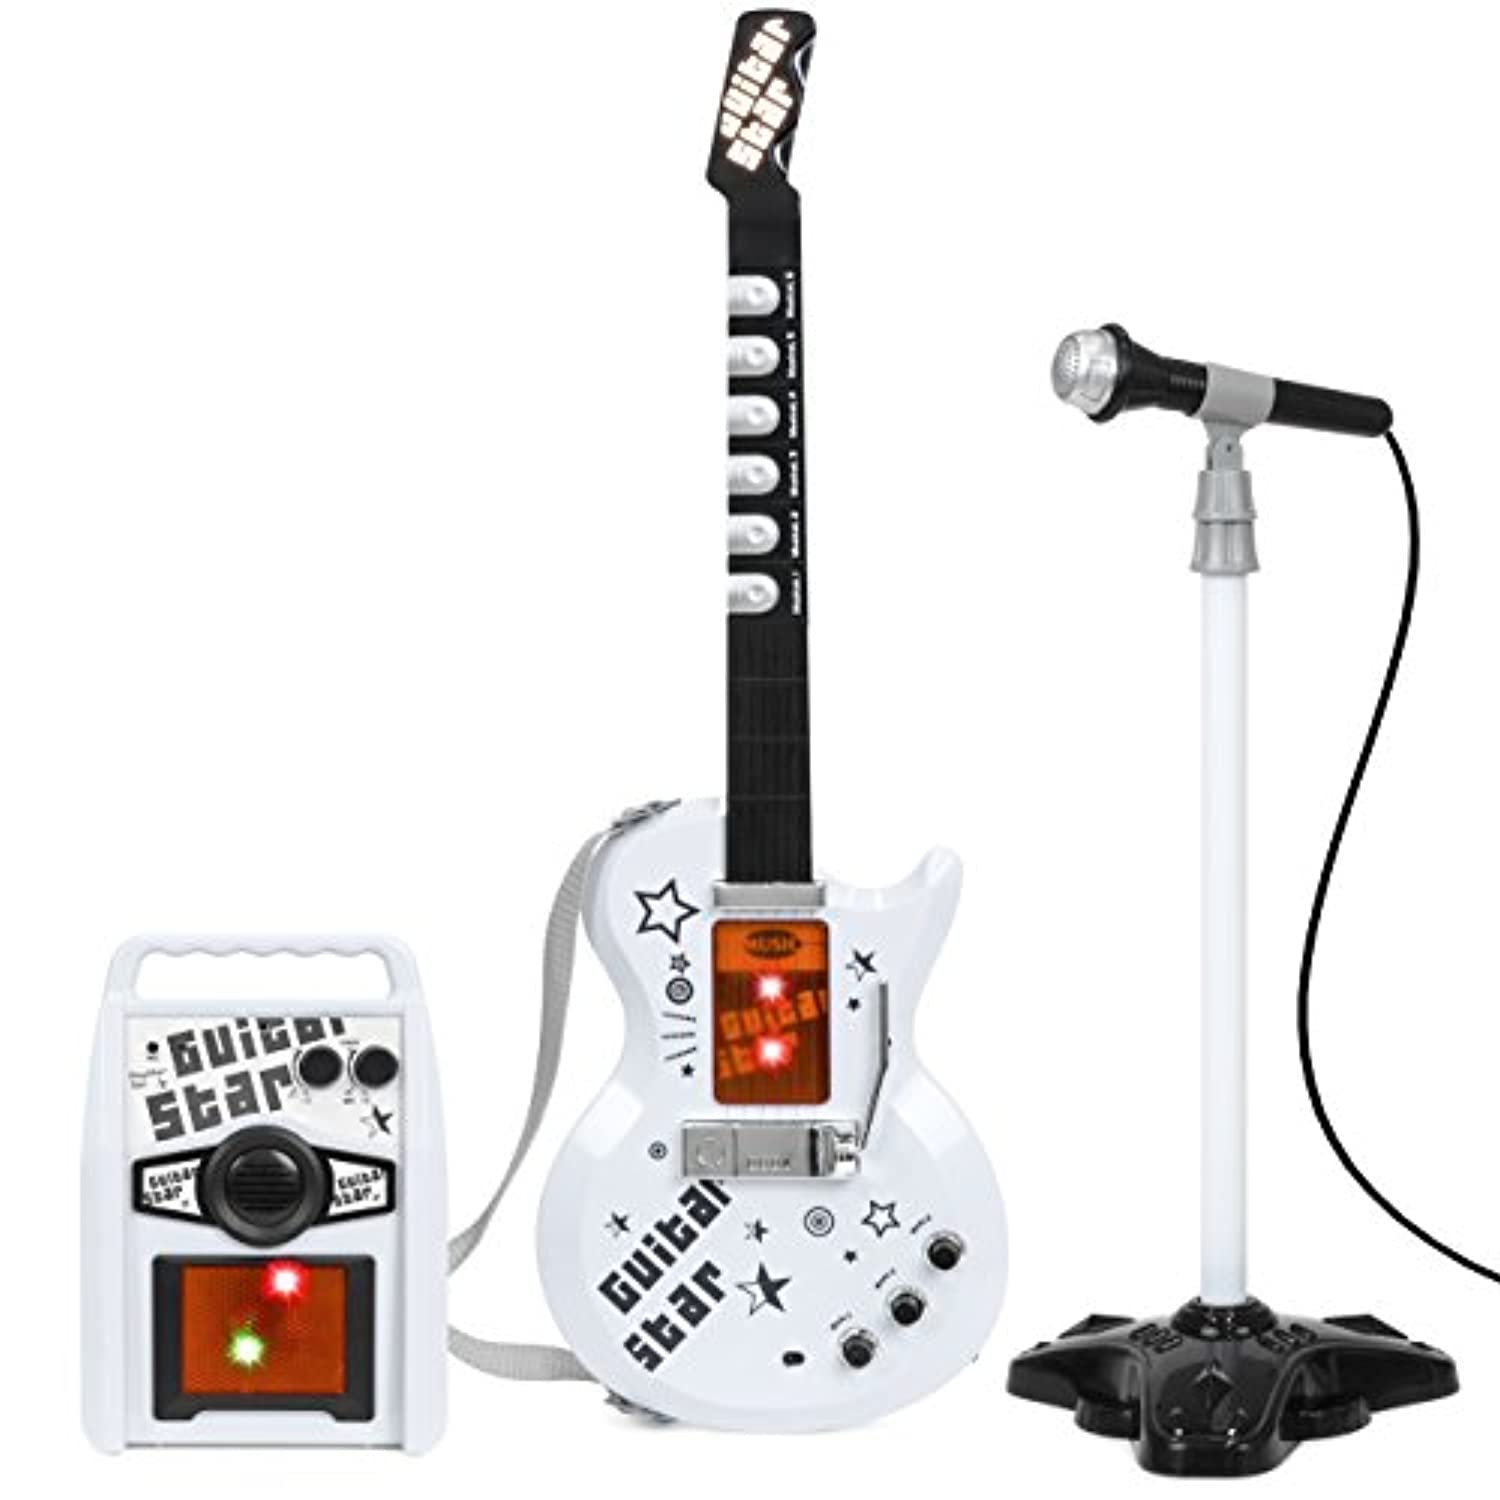 Best Choice Products Kids Electric Guitar Star PlayセットW / App接続、マイク、& Amp Musical Playセット(ホワイト)